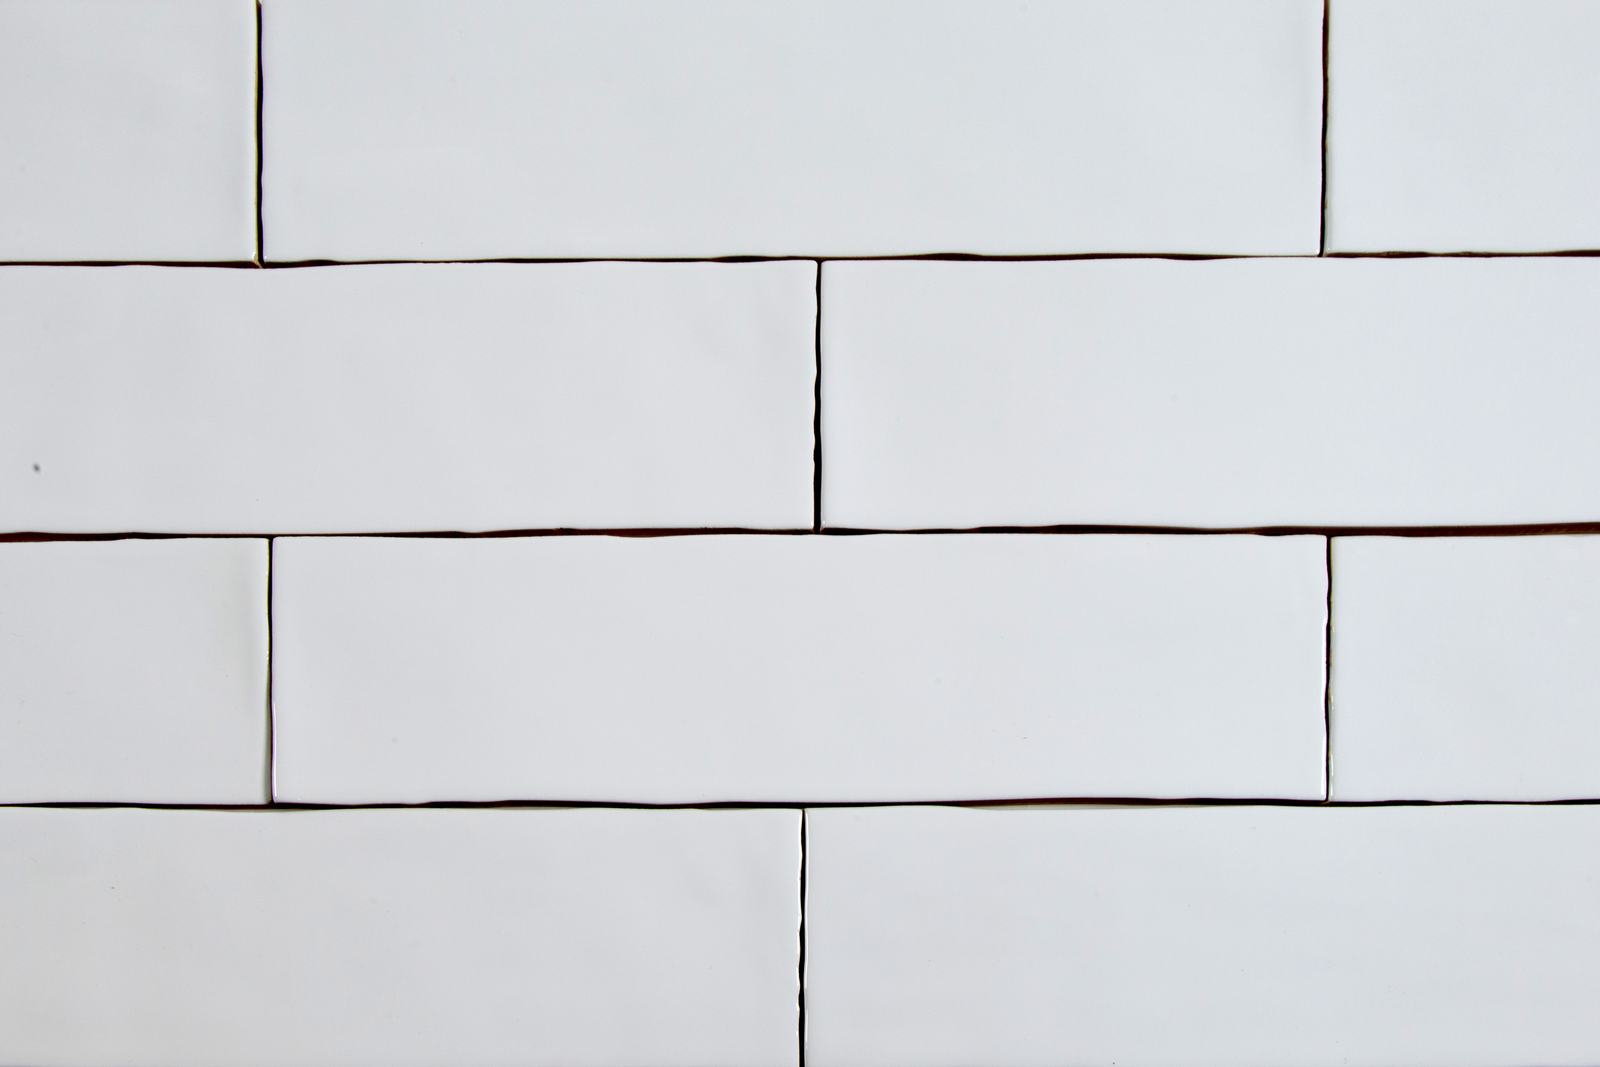 Lusso 3 X 12 Bianco Handmade Look Polished Subway Tile Storka